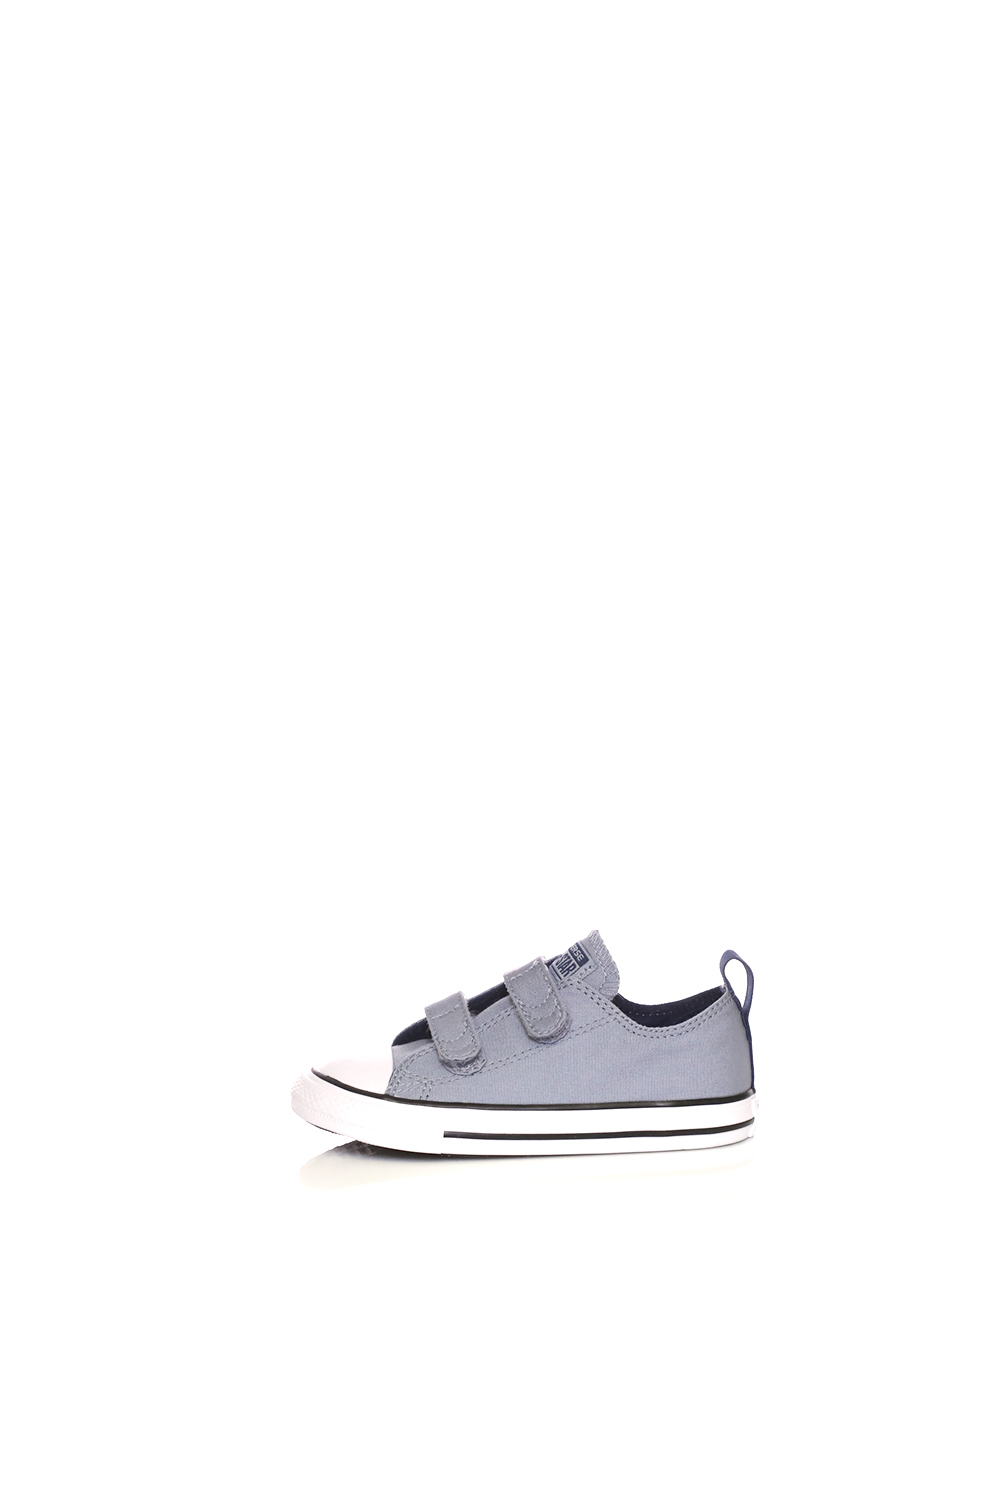 CONVERSE – Βρεφικά sneakers Converse Chuck Taylor All Star V Ox μοβ